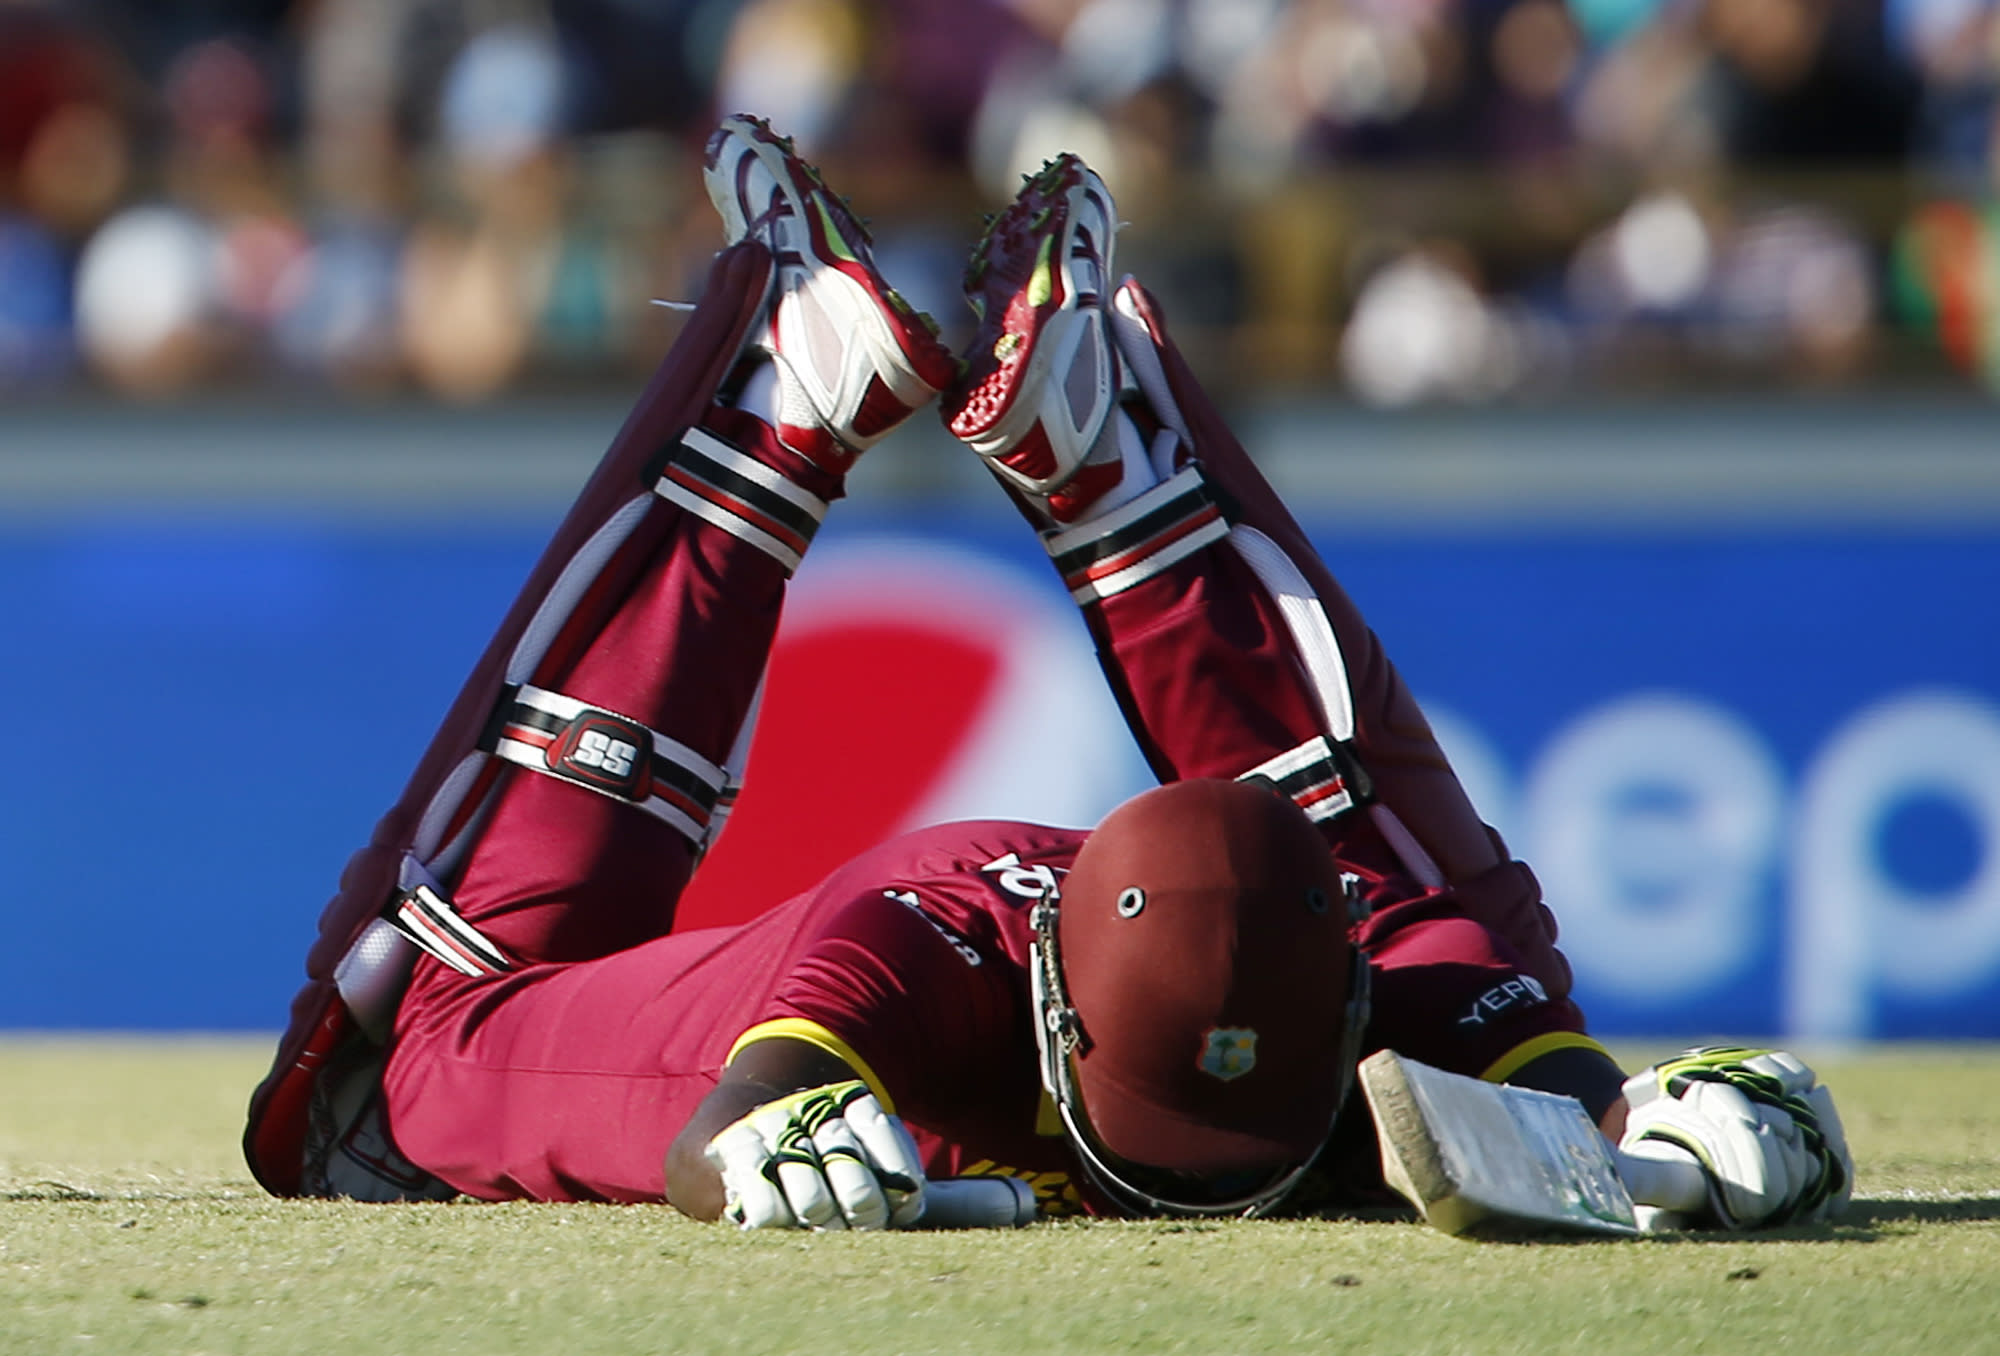 India beats West Indies by 4 wickets at World Cup